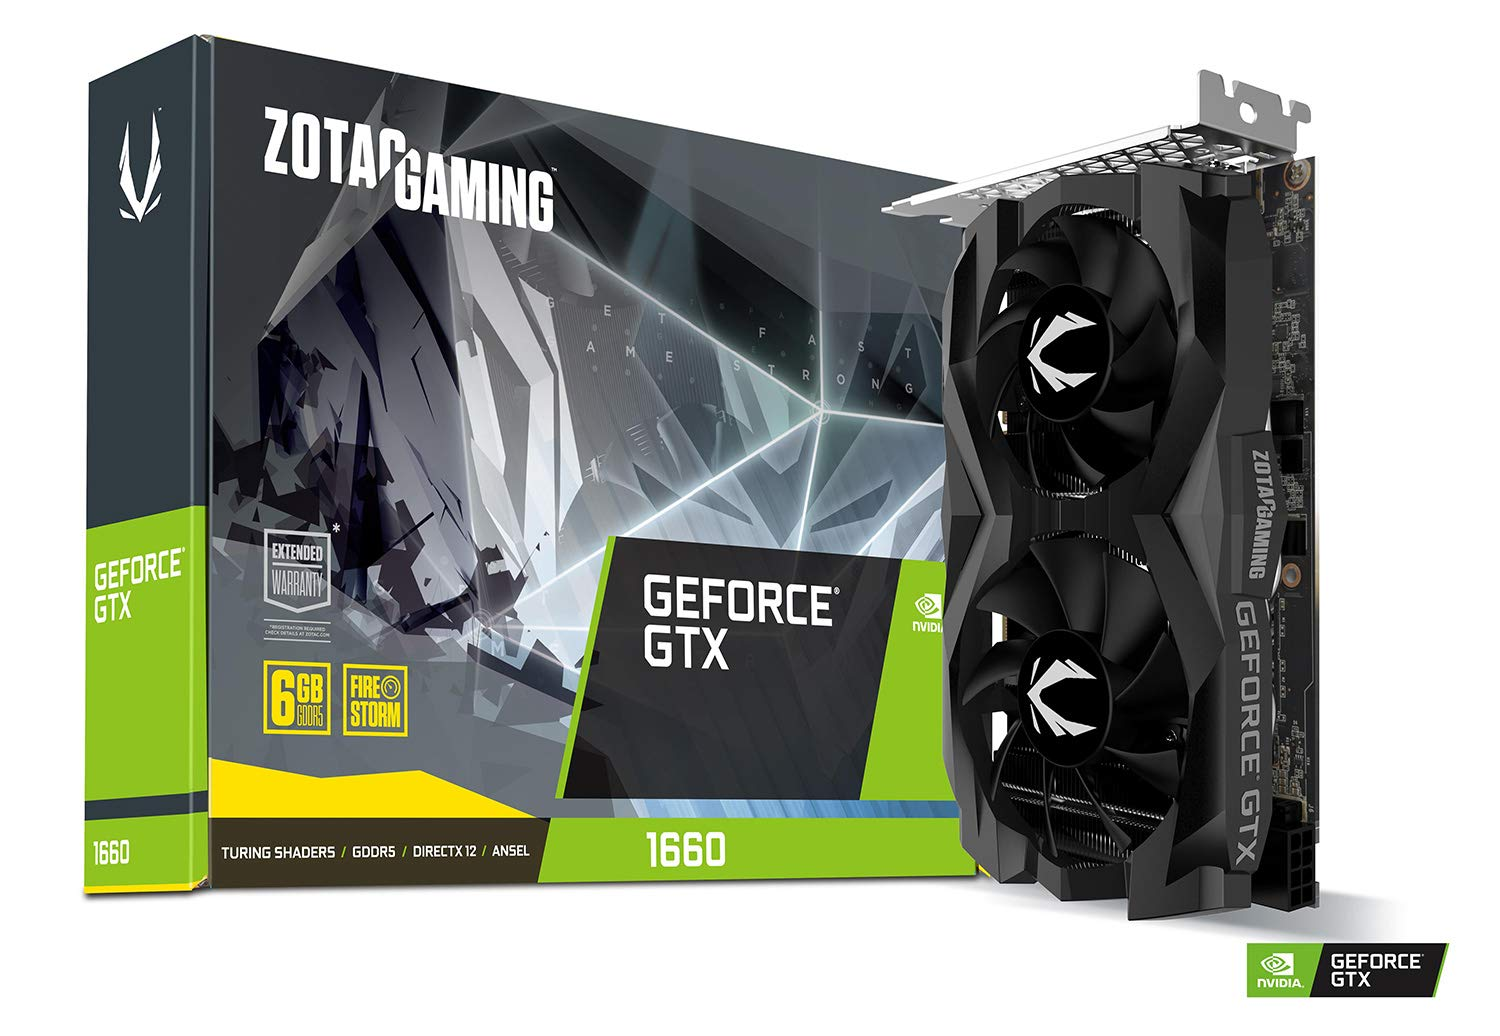 ZOTAC Gaming GeForce GTX 1660 6GB GDDR5 192-bit Gaming Graphics Card, Super Compact, ZT-T16600F-10L by ZOTAC